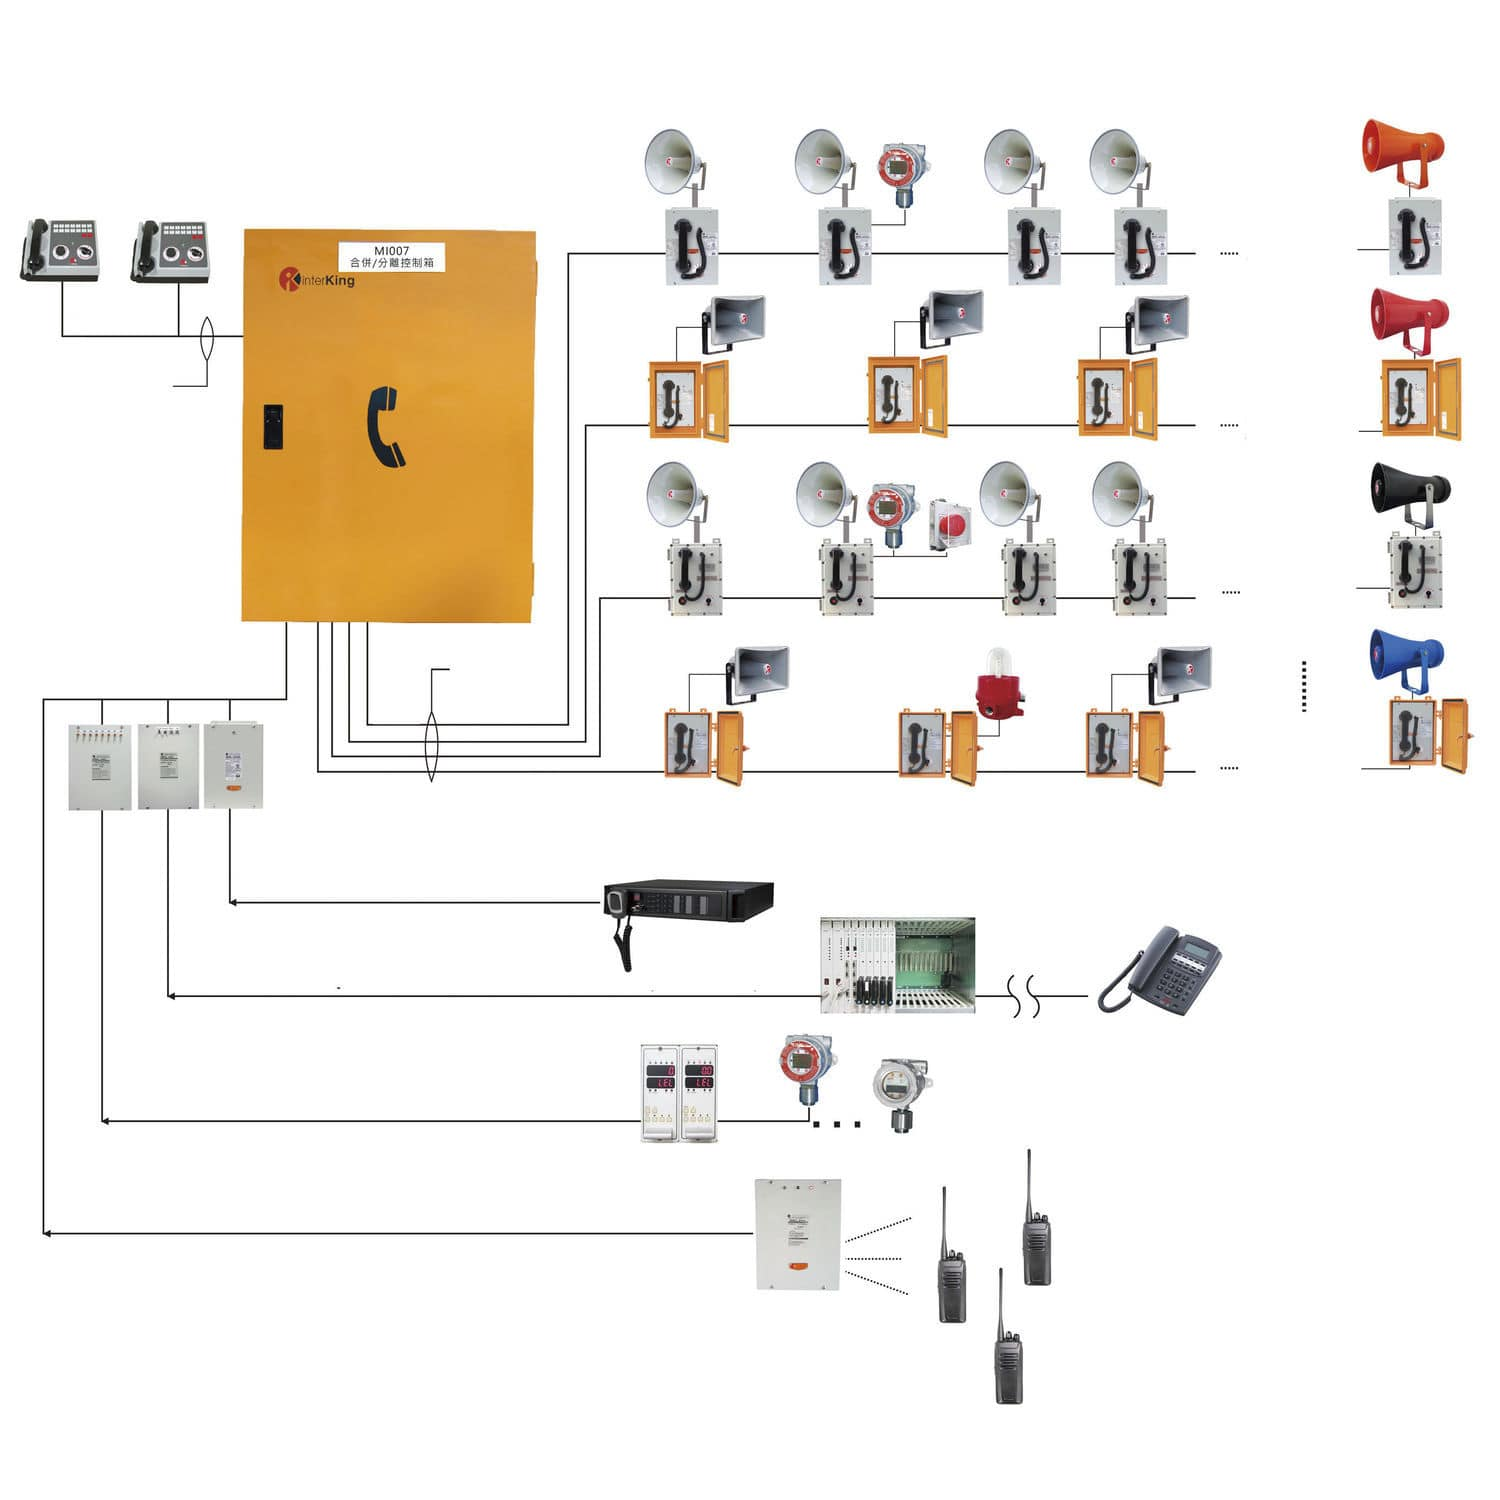 Pa Intercom Wiring Diagram Detailed Schematics Systems Page Party System Interking Enterprises Ltd Power